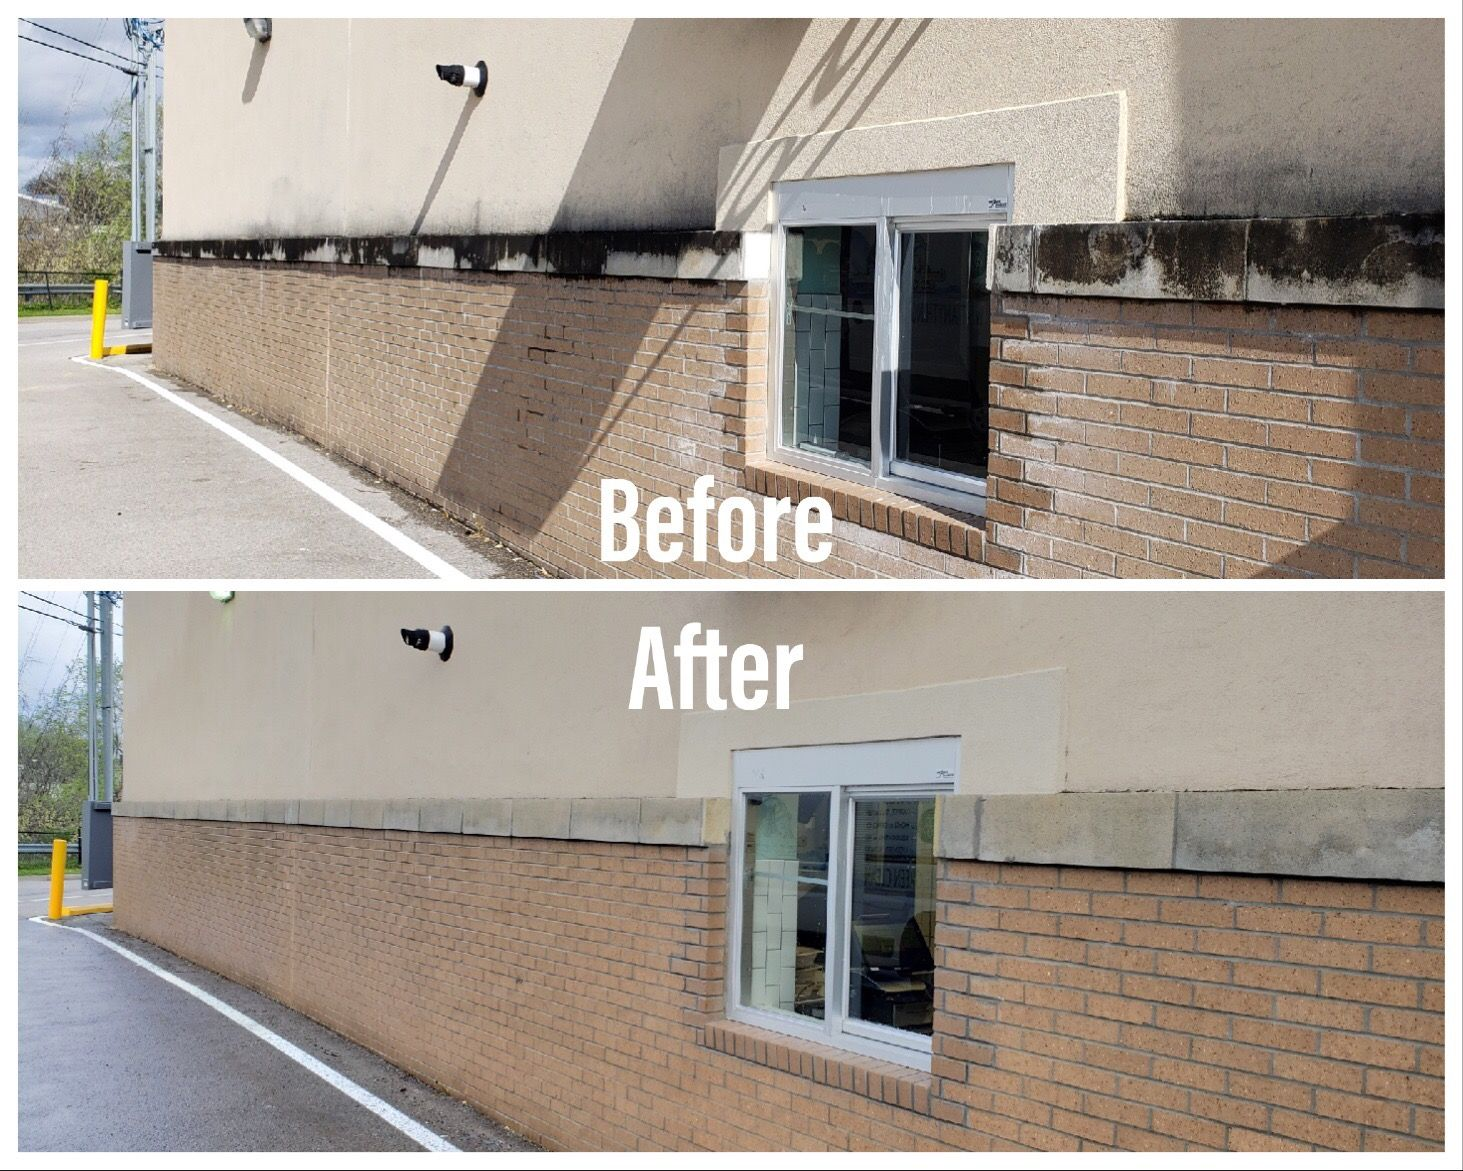 Commercial Pressure Washing In 2020 Pressure Washing Services Pressure Washing Outdoor Decor